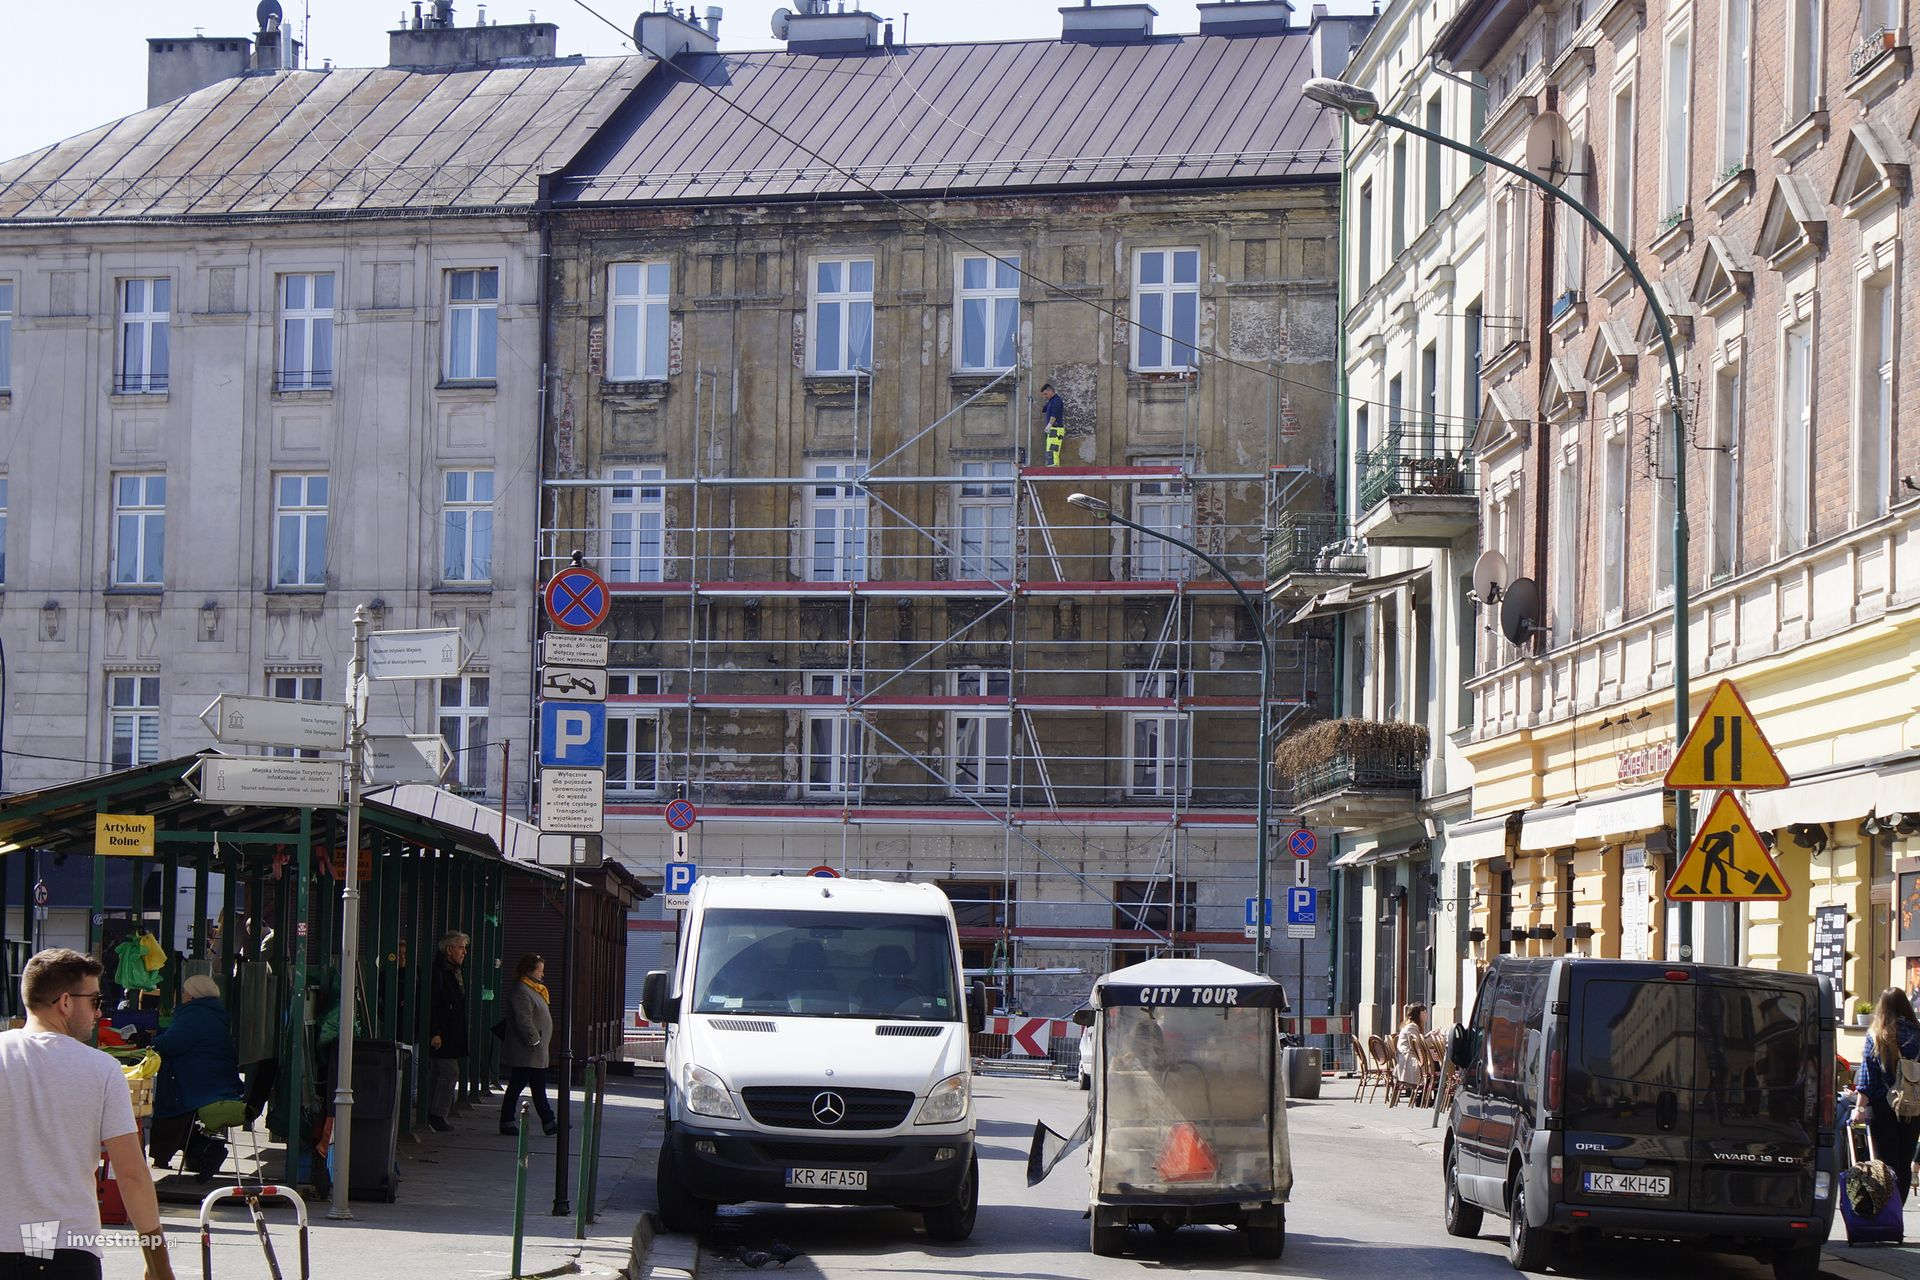 Remont Kamienicy, Plac Nowy 7